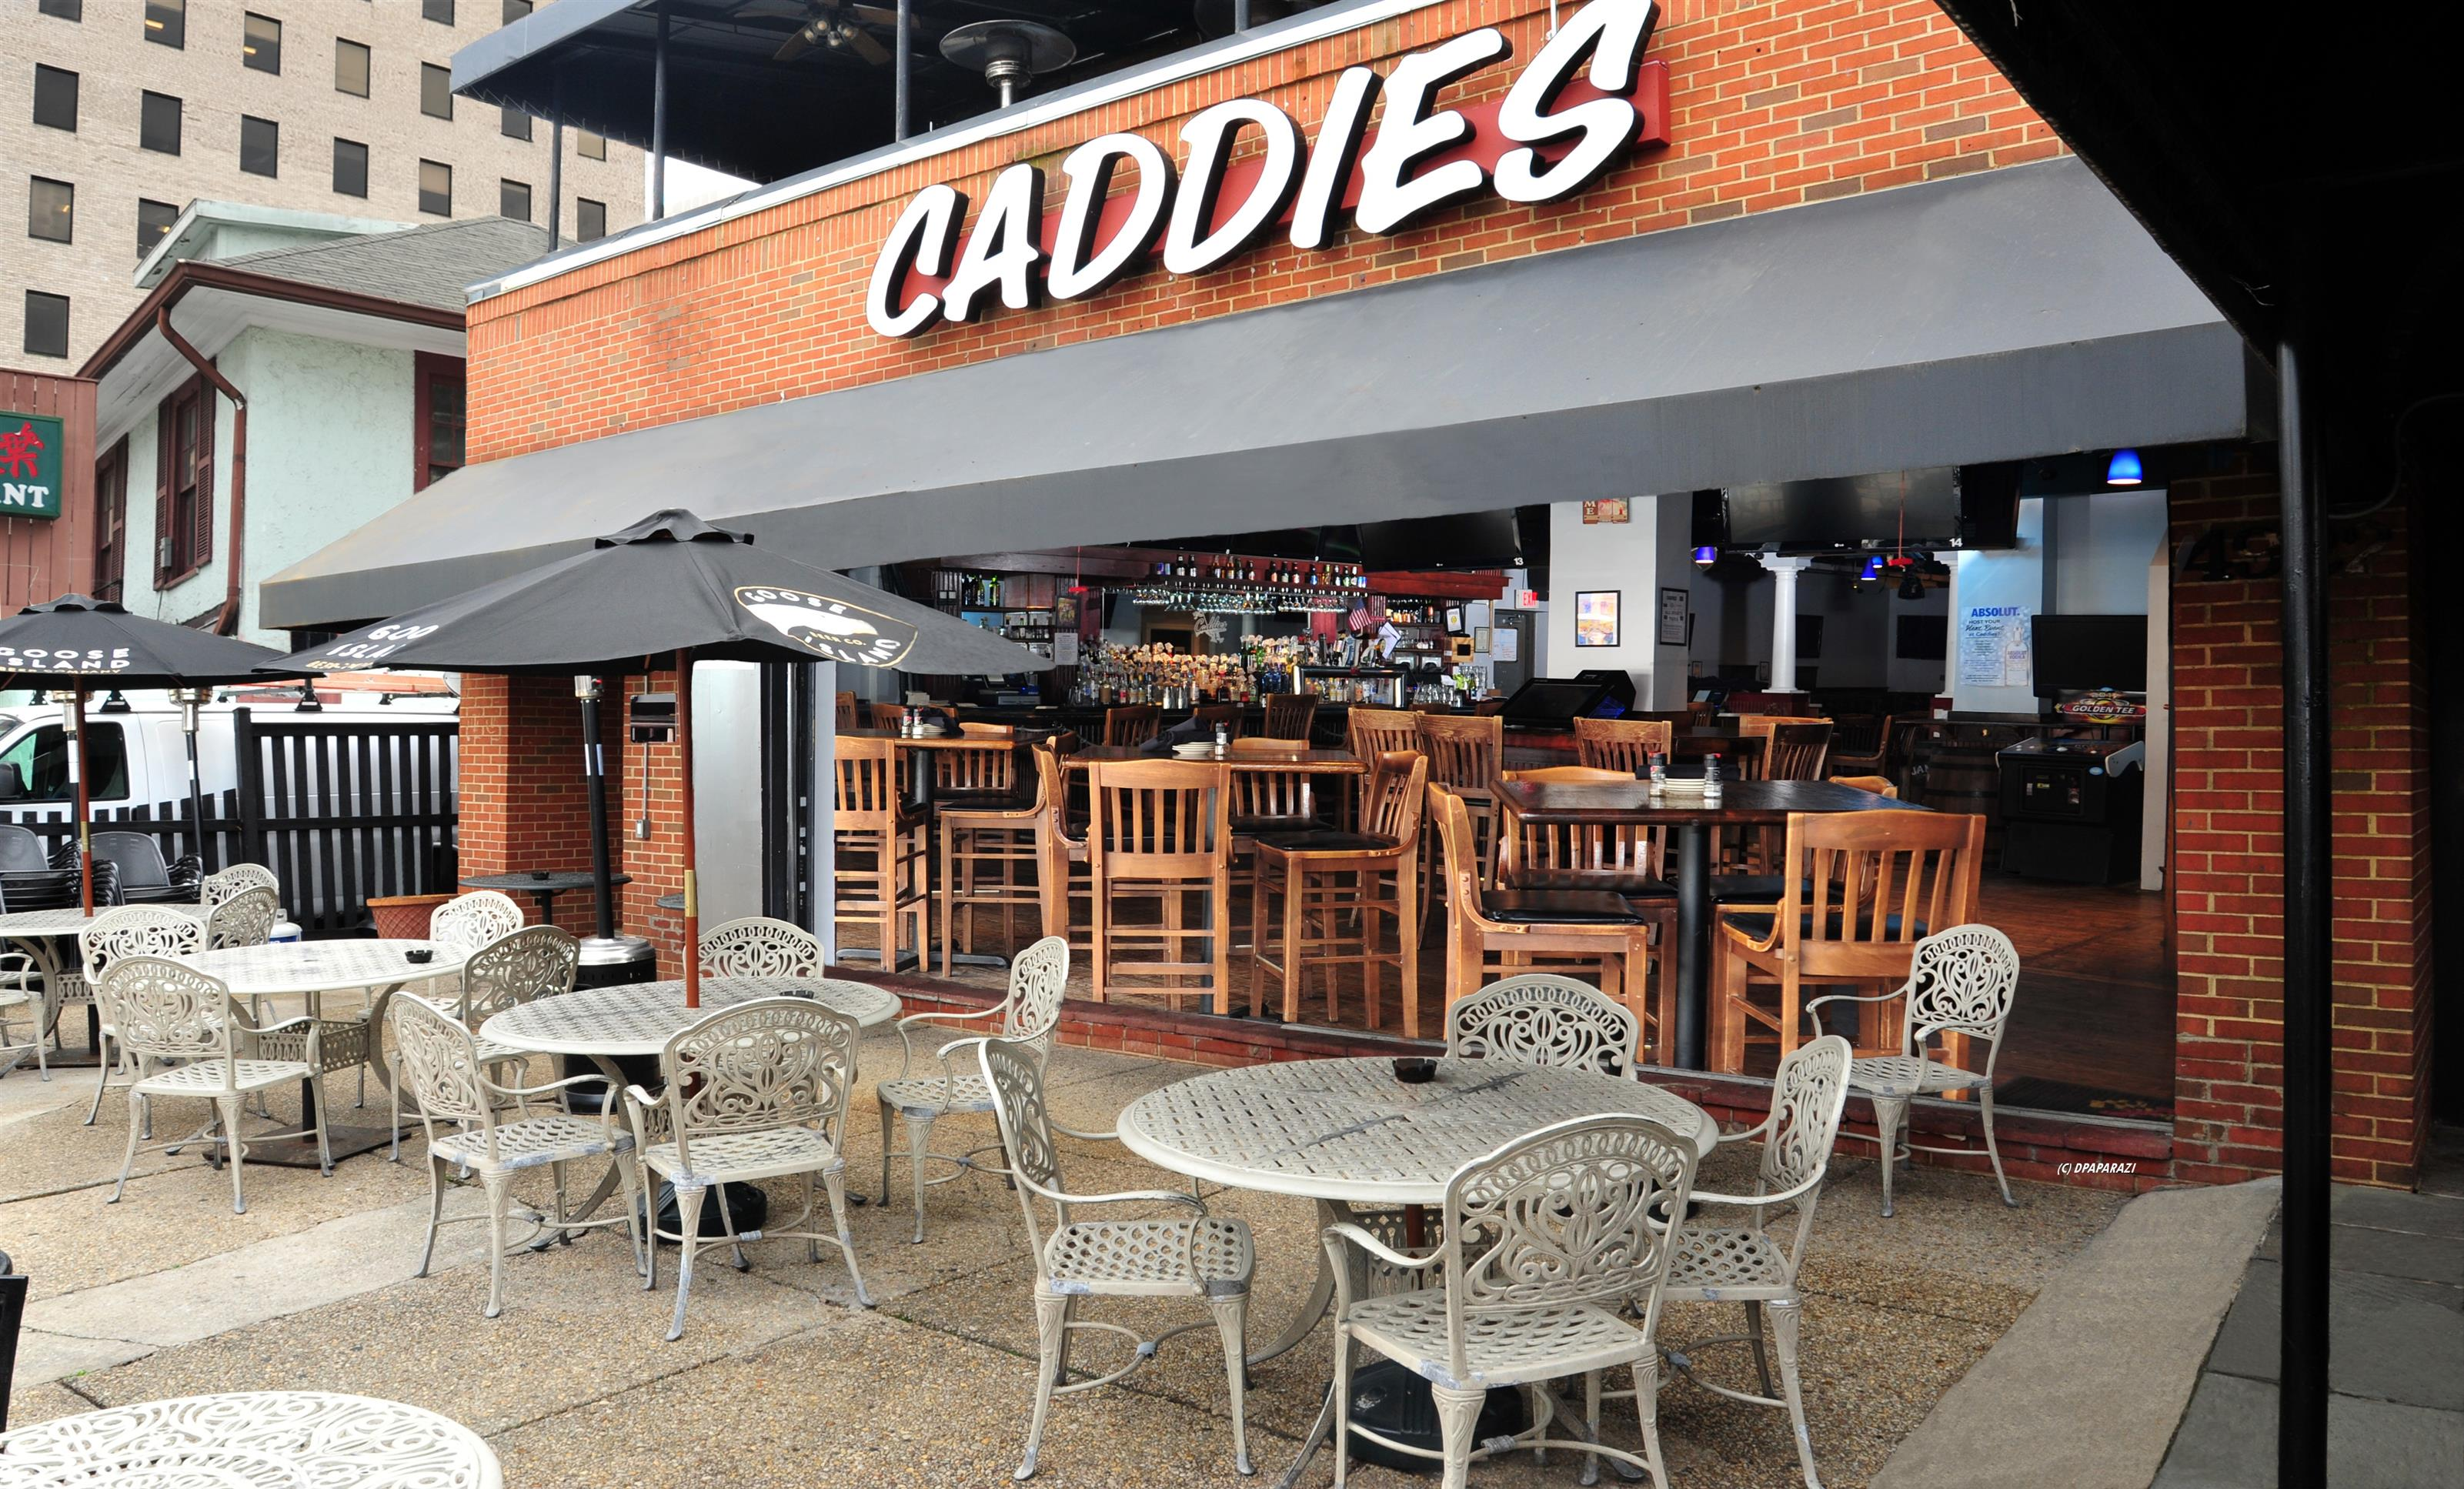 Caddies If The Game Is On TV Then It Is Playing At Caddies - Table top caddies for restaurants